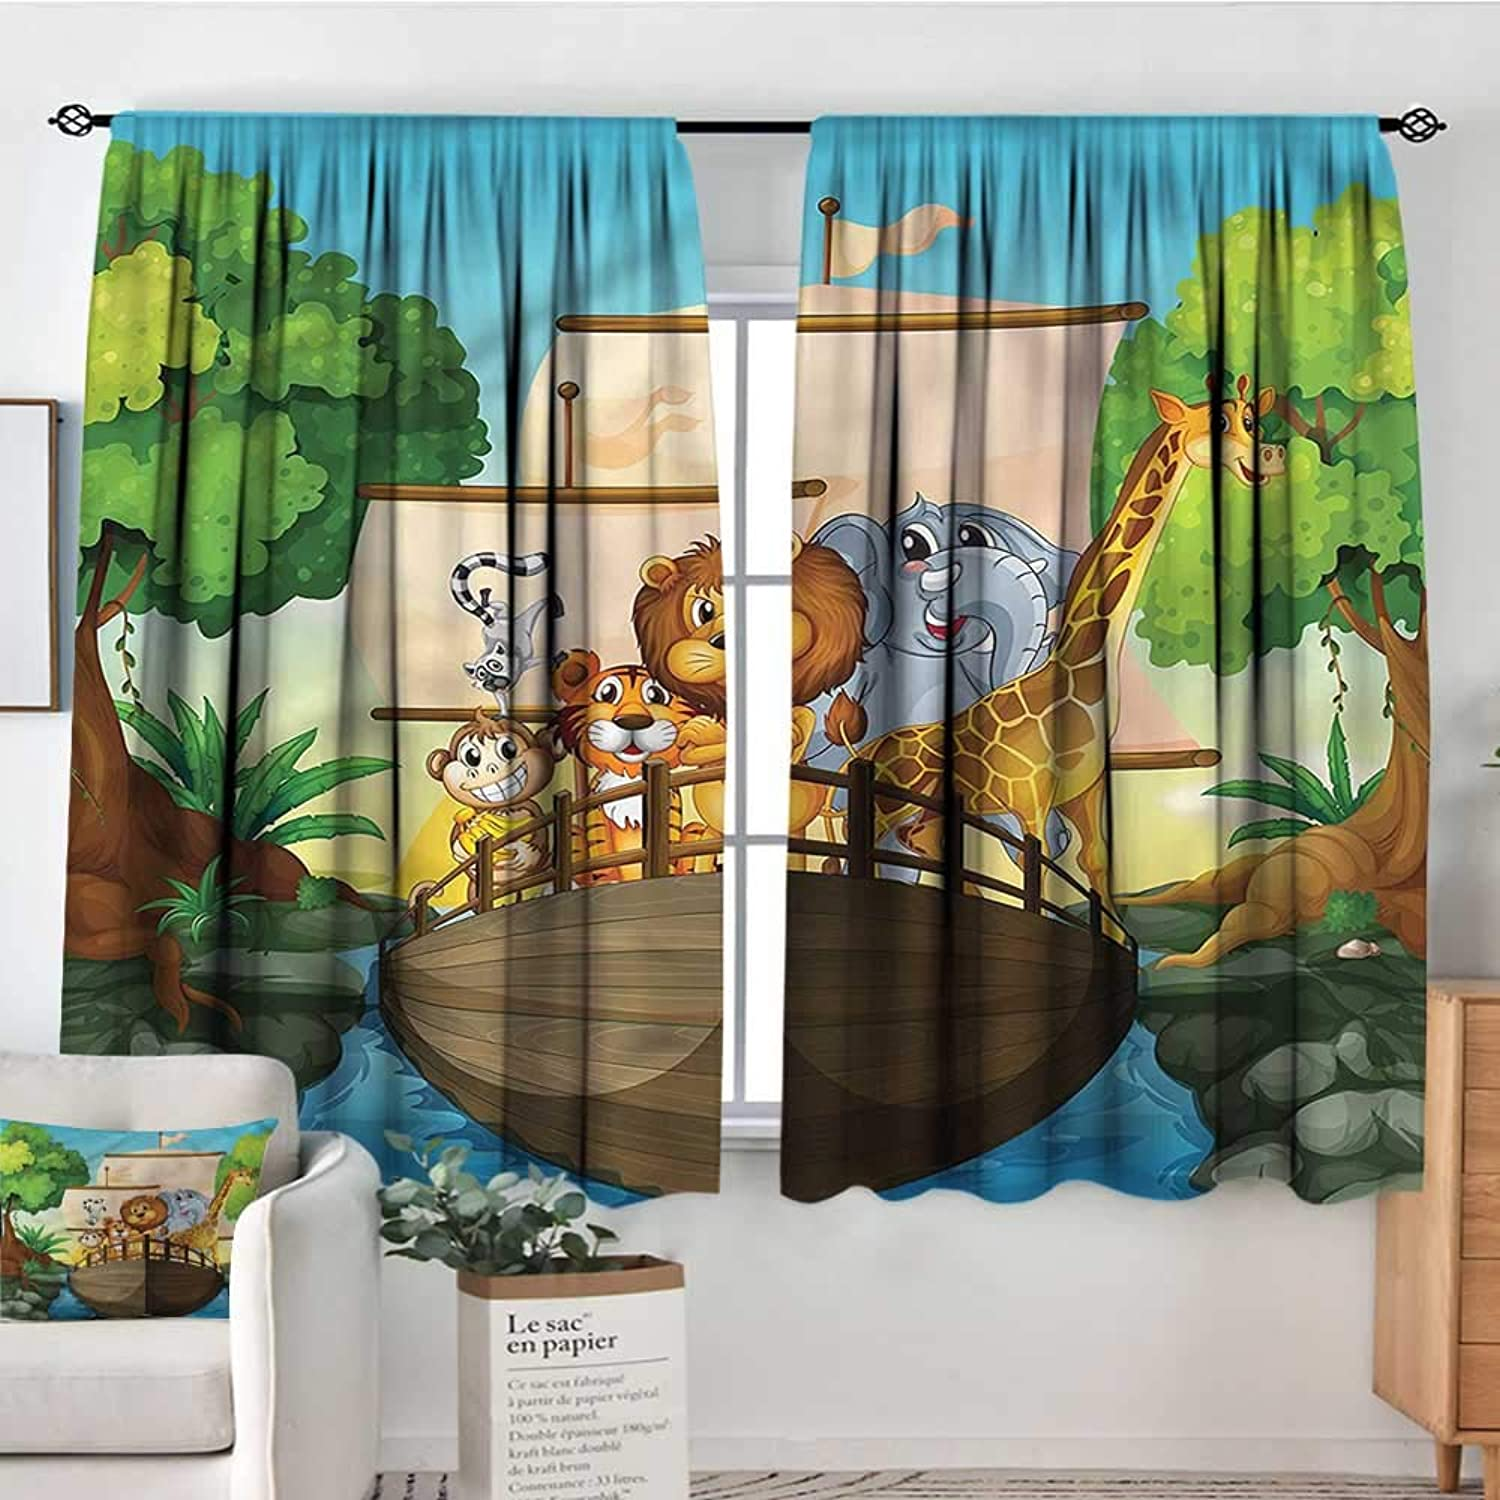 Familytaste Zoo,Indo Panes Drapes Floating Boat with Animals 42 X54  Kids Backout Curtains for Bedroom